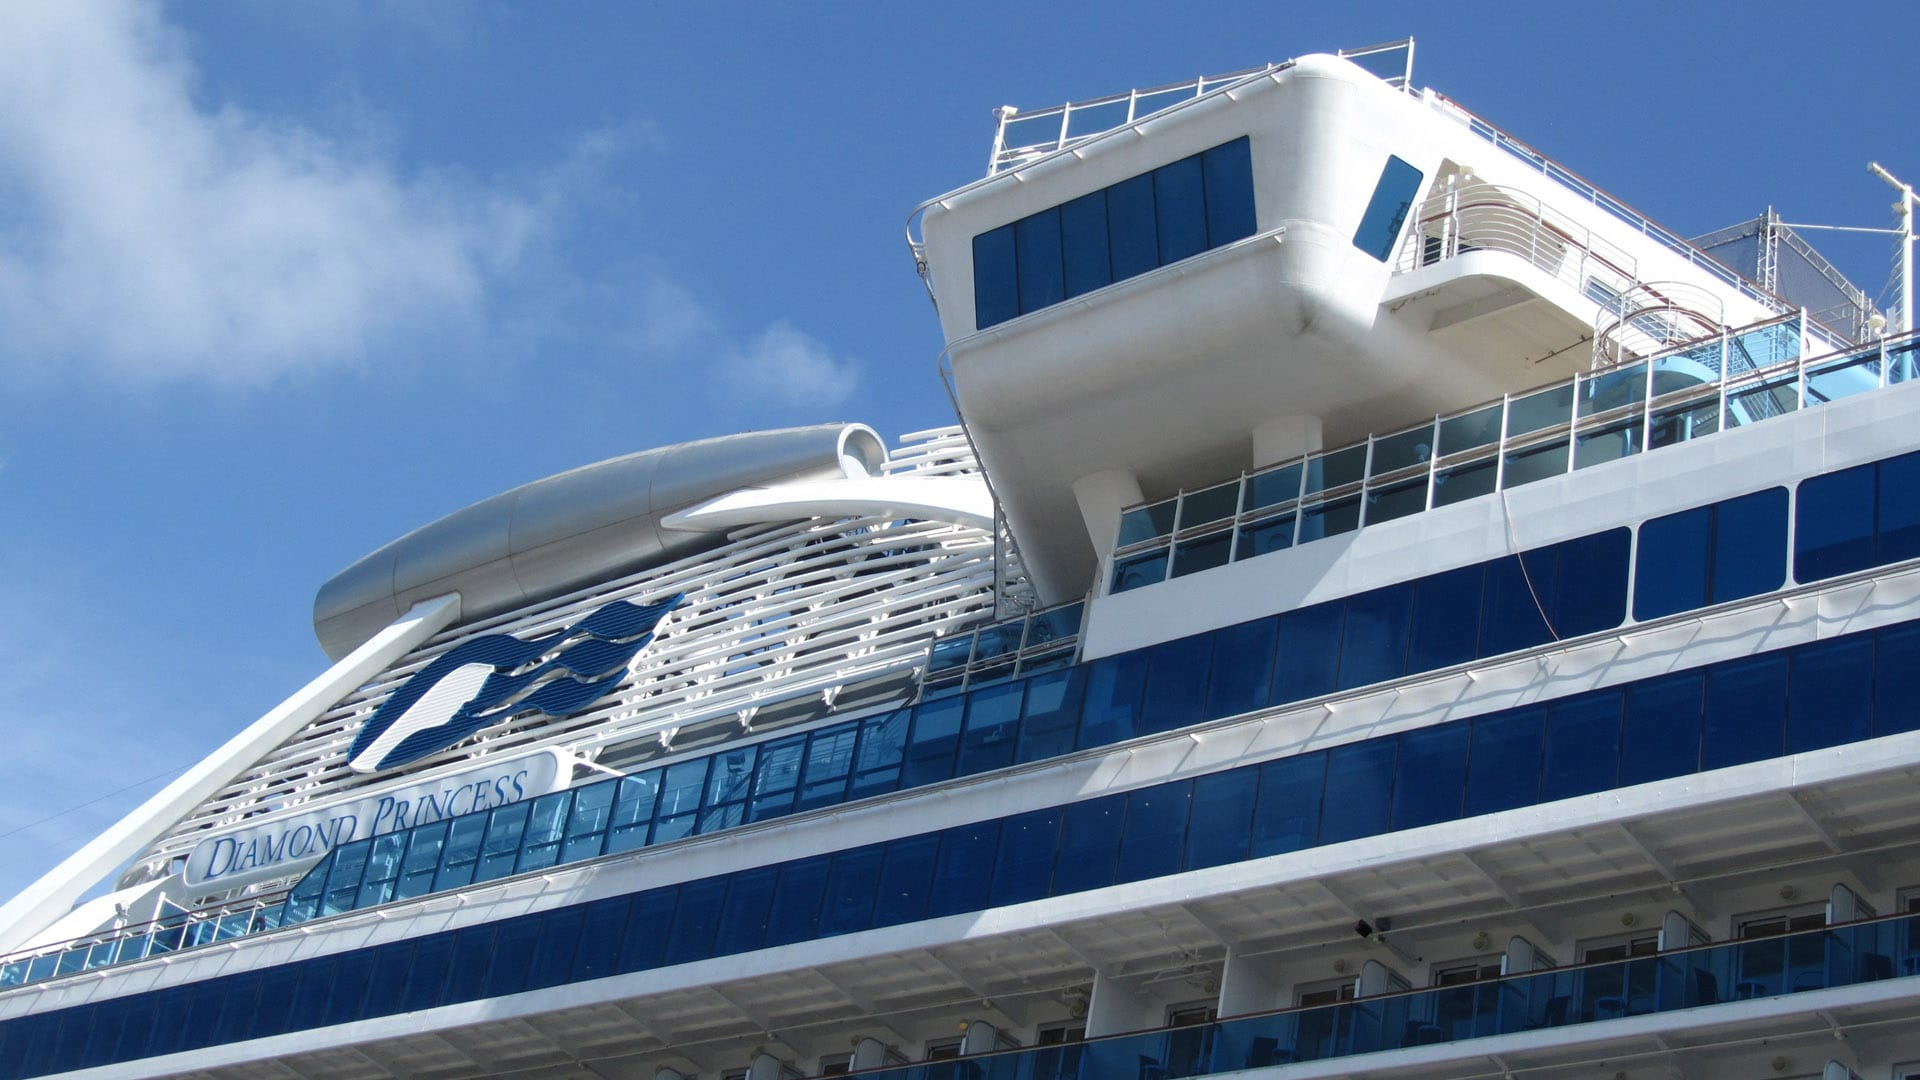 10 People Test Positive for Coronavirus onboard Diamond Princess. Ship Quarantined.